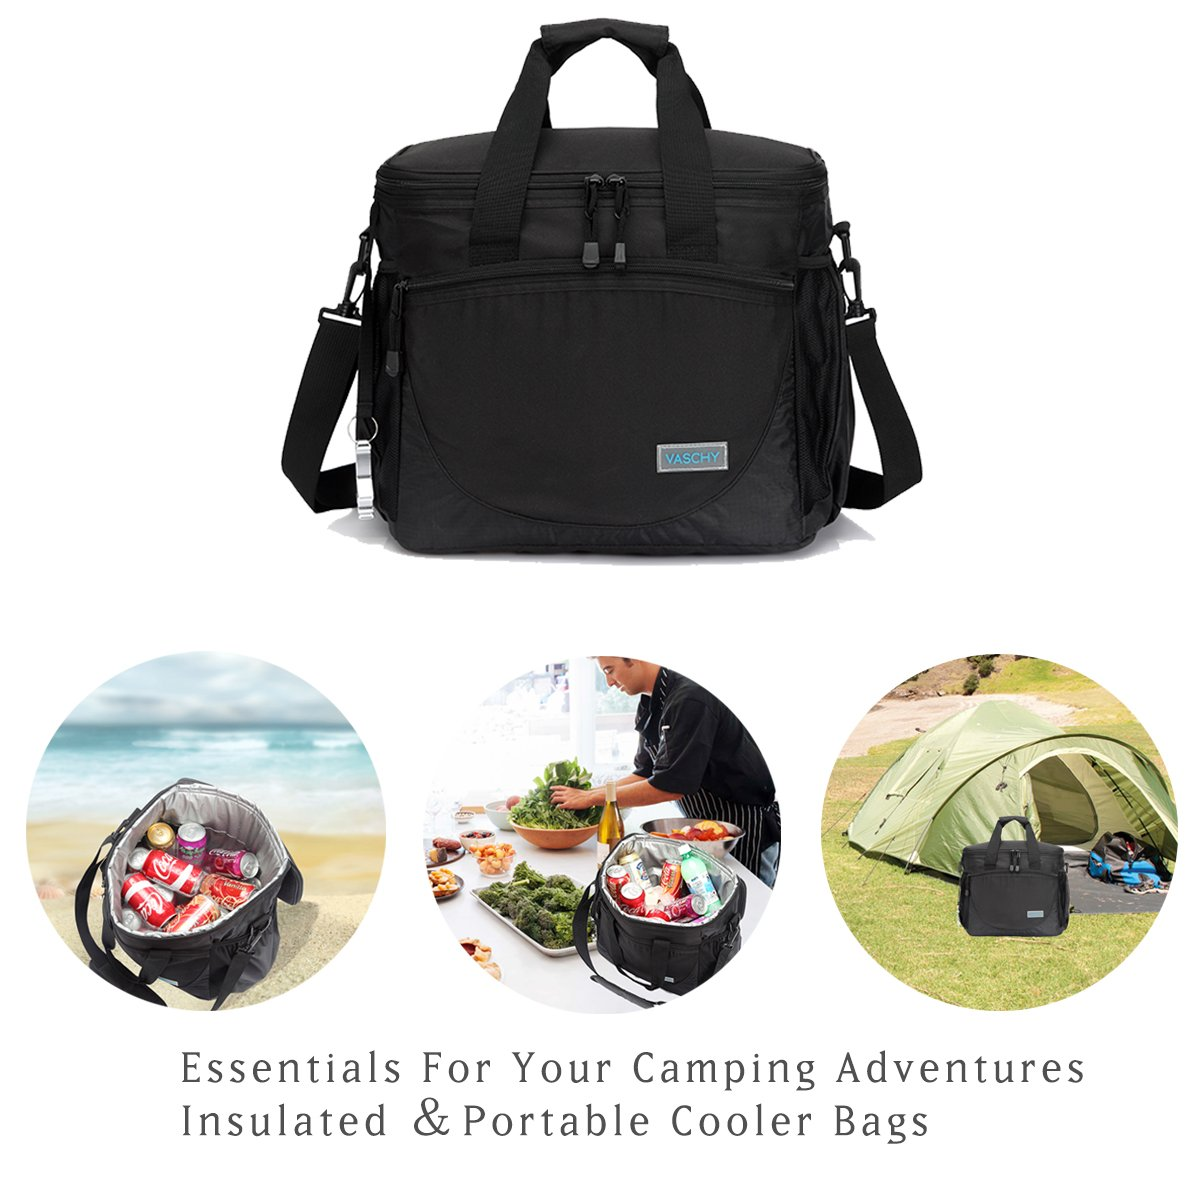 Fishing with Detachable Shoulder Strap,Beer Opener Black VACB095BA Beach VASCHY Large Cooler Bag 30-Can 23L Insulated Leakproof Picnic Lunch Bag Multi-Pockets for Camping Travel